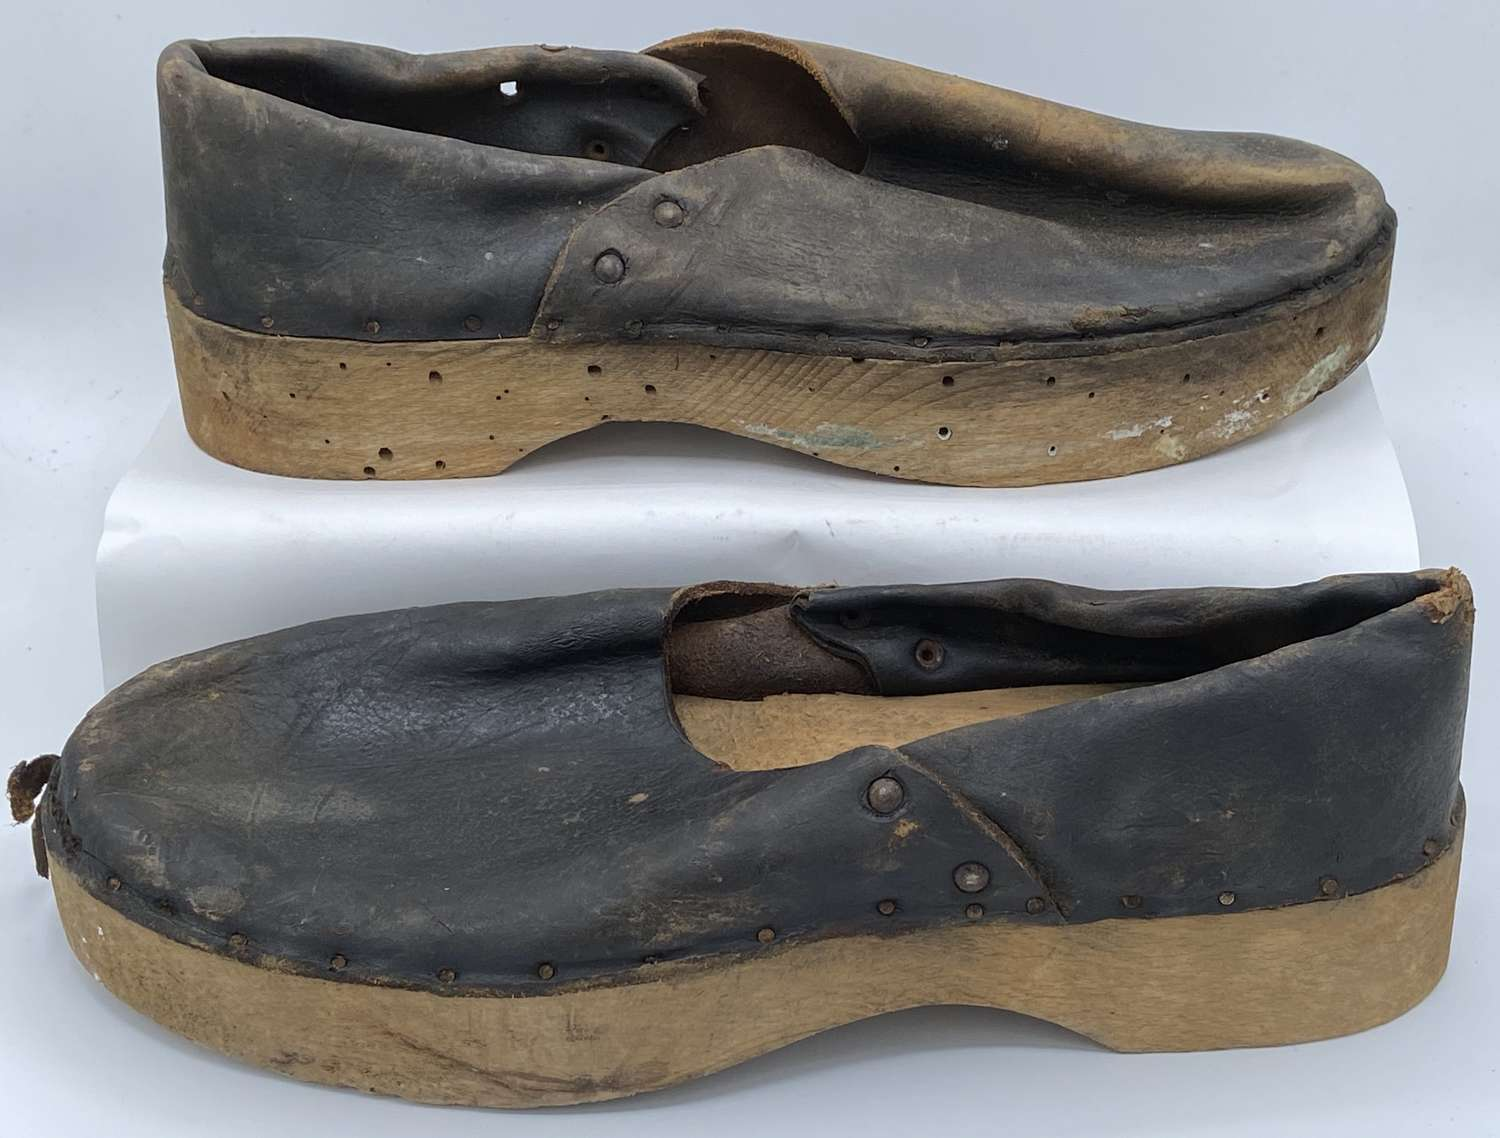 WW2 German Handmade unissued Concentration Camp KZ Reichenau Shoes